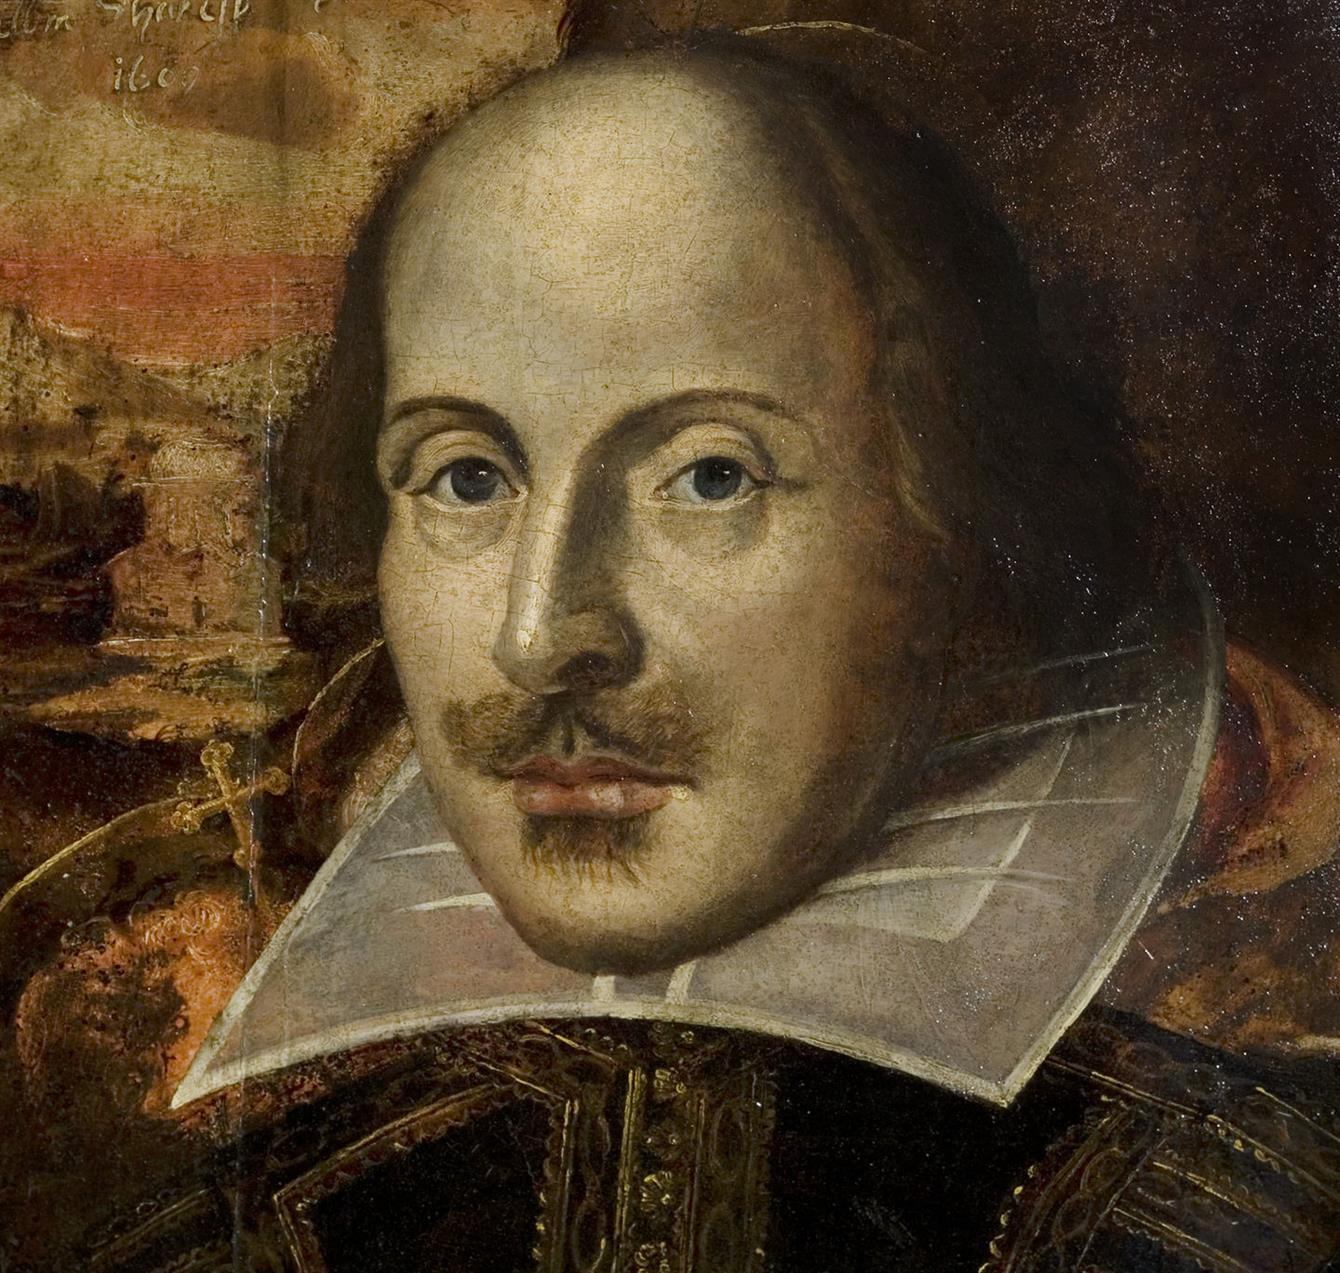 william shakespeare short biography essay biography sw shakespeare  william shakespeare s life and times royal shakespeare company